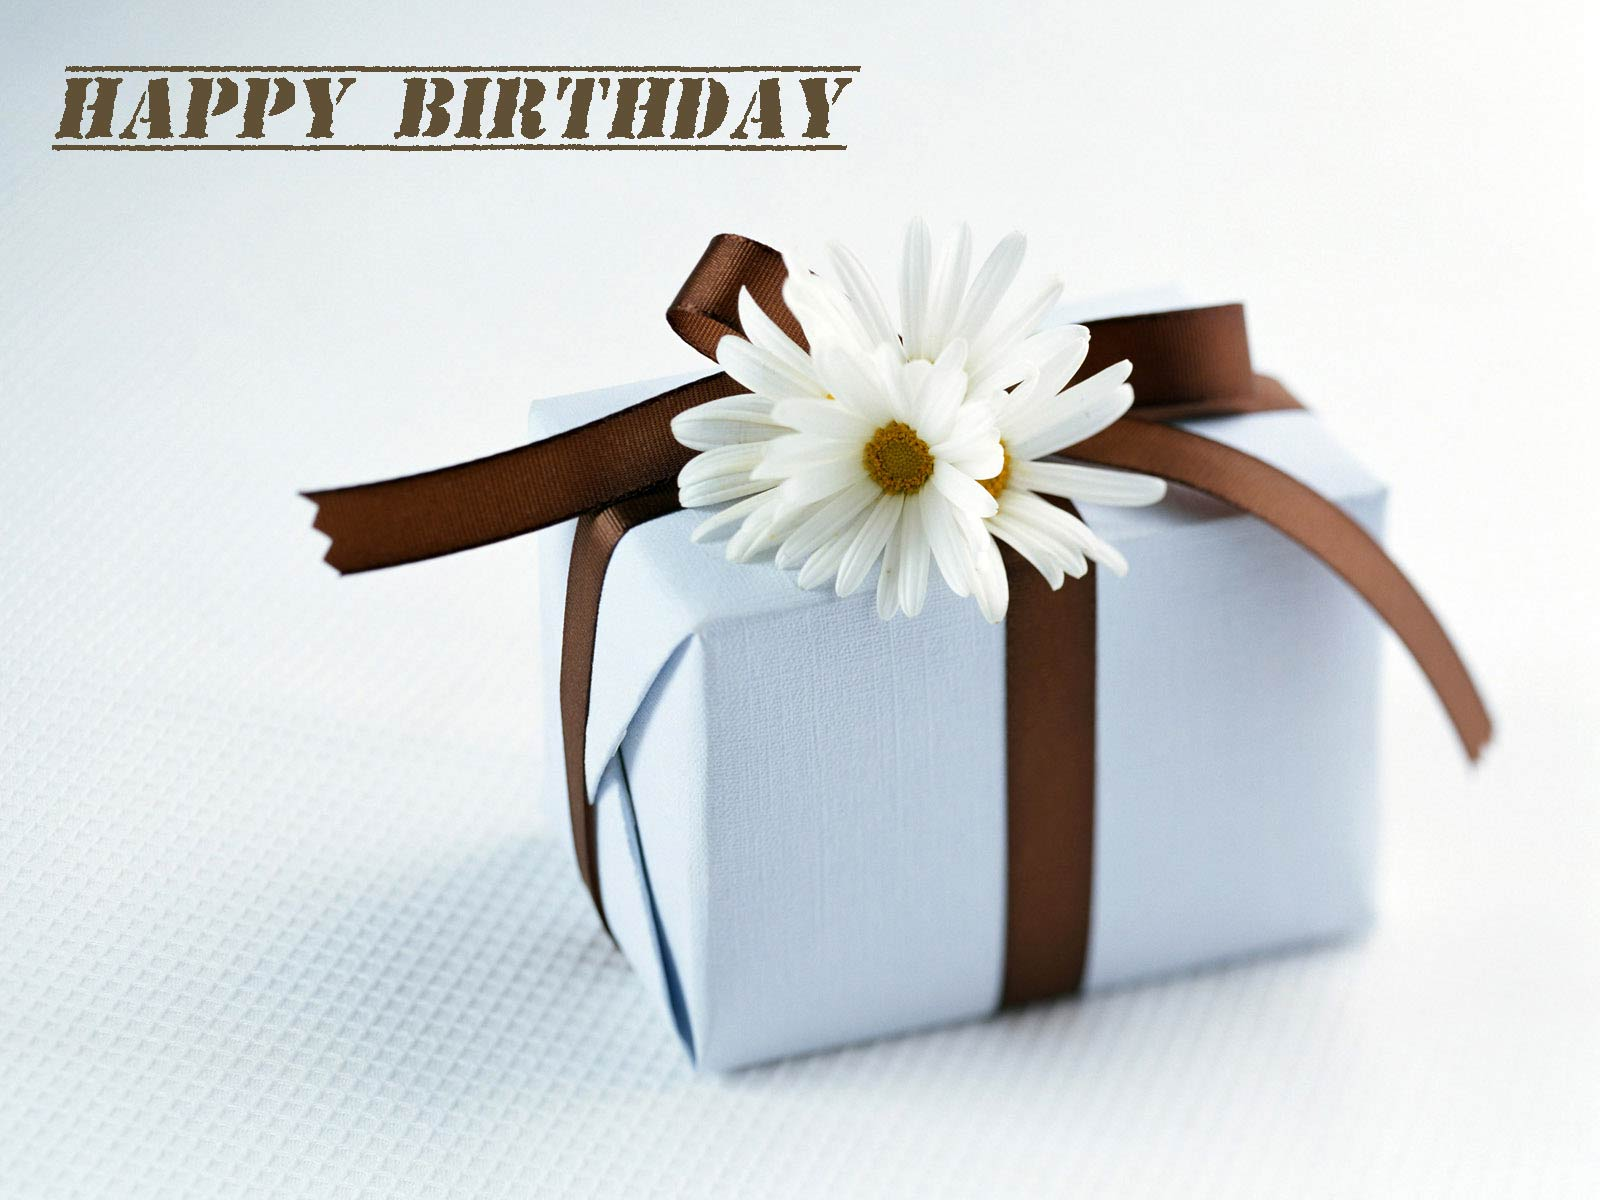 Lovely and Interesting Birthday Wishes That Can Make Your Sister-in-law Smile 2